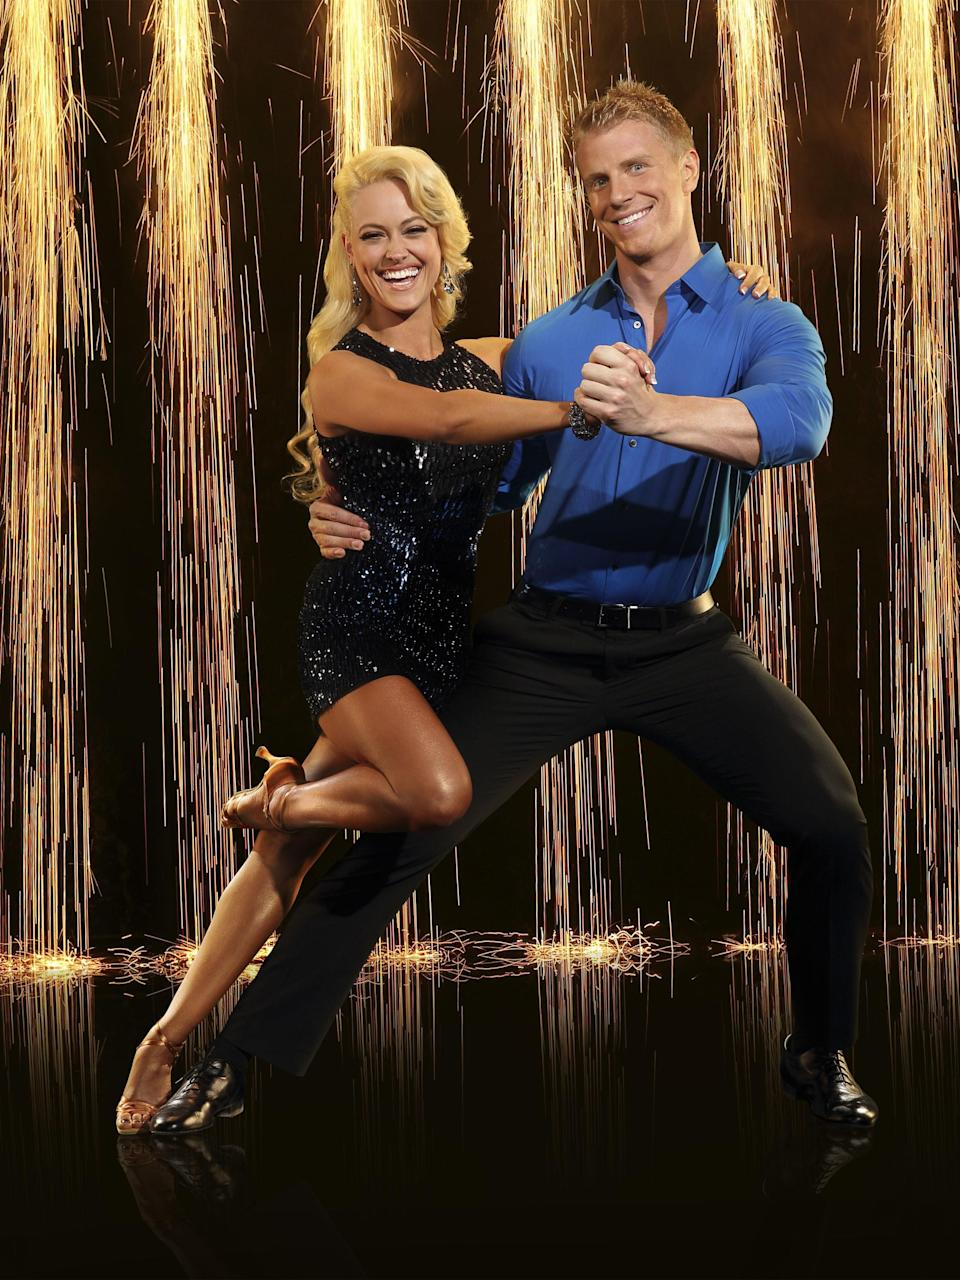 """Lowe came in sixth place during season 16 in 2013, but it didn't come without consequences. The former Bachelor previously told <a href=""""https://www.etonline.com/news/215485_sean_lowe_says_doing_dancing_with_the_stars_after_the_bachelor_was_toxic_for_relationship_with_catherine"""" rel=""""nofollow noopener"""" target=""""_blank"""" data-ylk=""""slk:Entertainment Tonight"""" class=""""link rapid-noclick-resp""""><em>Entertainment Tonight</em></a> that joining the dancing competition right after getting engaged to his now wife Catherine Guidici wasn't exactly the healthiest choice. """"I didn't know the time commitment I was signing up for when I decided to do the show,"""" he said. """"I was rehearsing 10 or 12 hours a day, so my new fiancée was basically just on her own, which was really unfair to her."""" But it turns out the struggles the couple faced while Lowe was competing on the show ended up working out in their favor: """"To be able to overcome that giant hurdle,"""" he says, """"I really felt like, 'Yeah, there's no doubt about it—she's the one."""""""